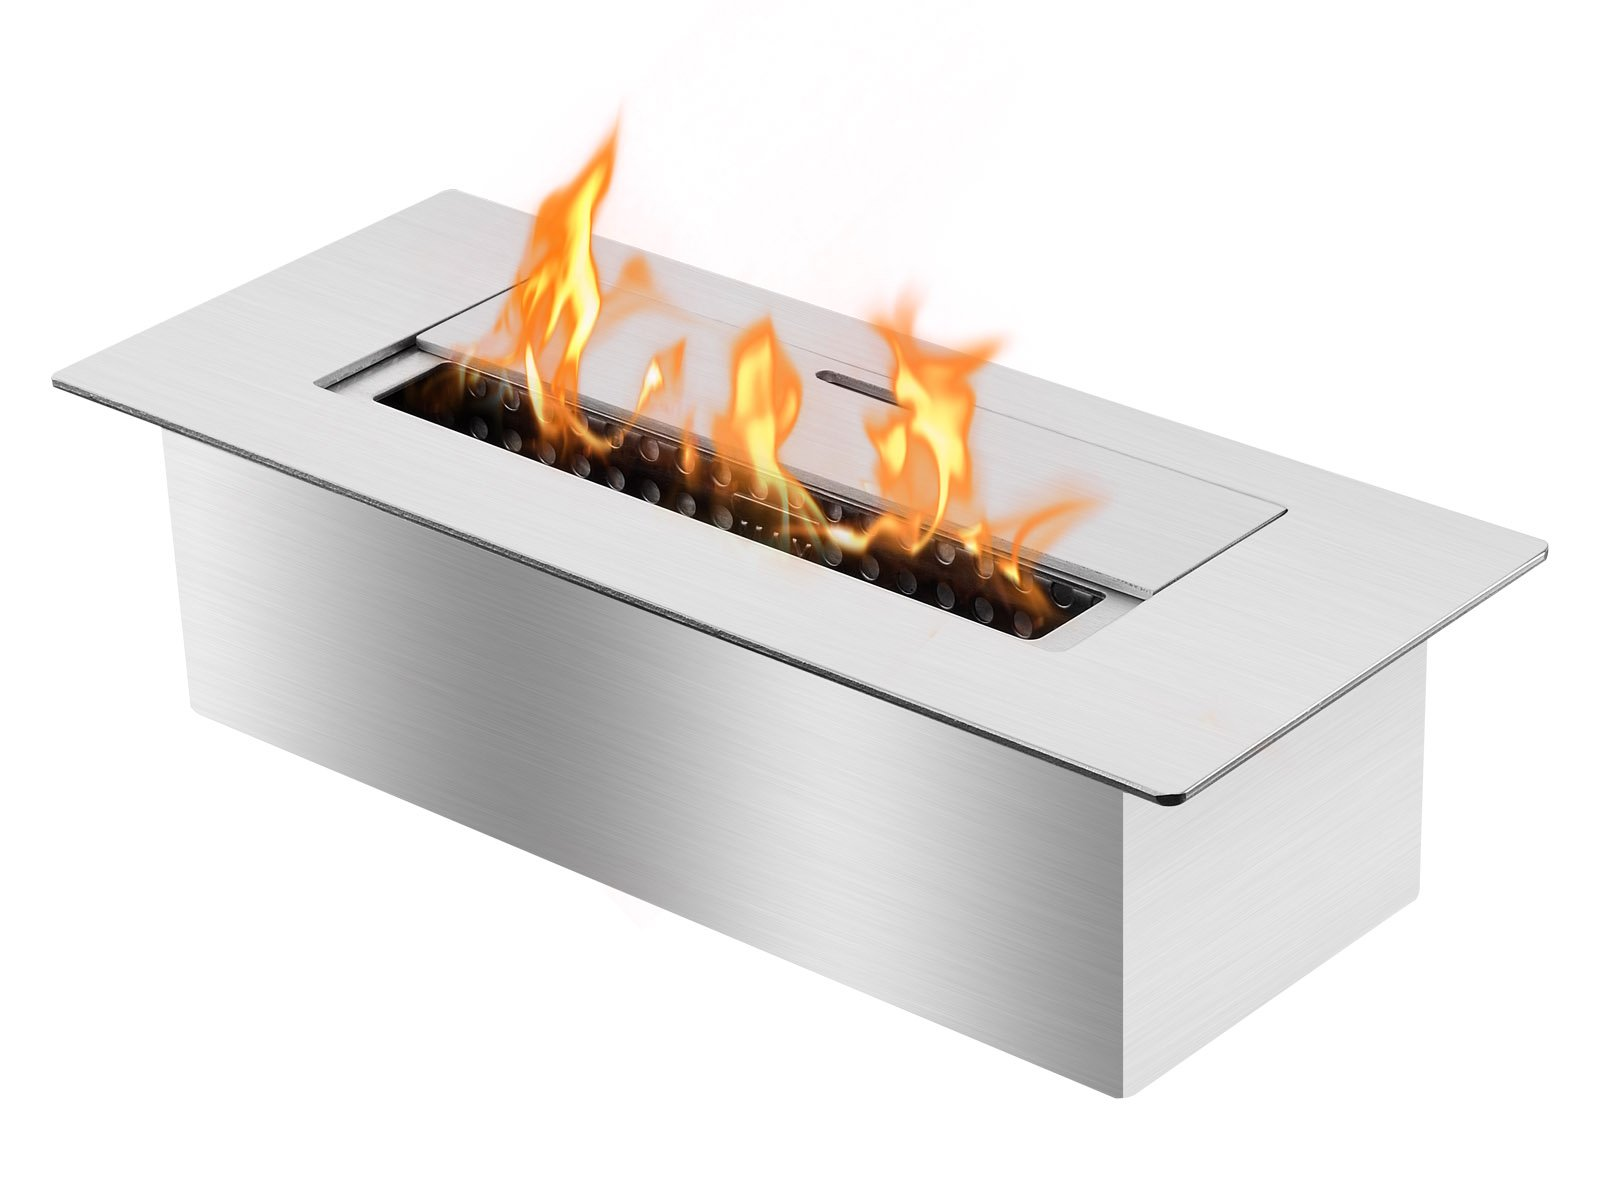 Ignis EB1200 Ethanol Fireplace Burner Insert by Ignis Products